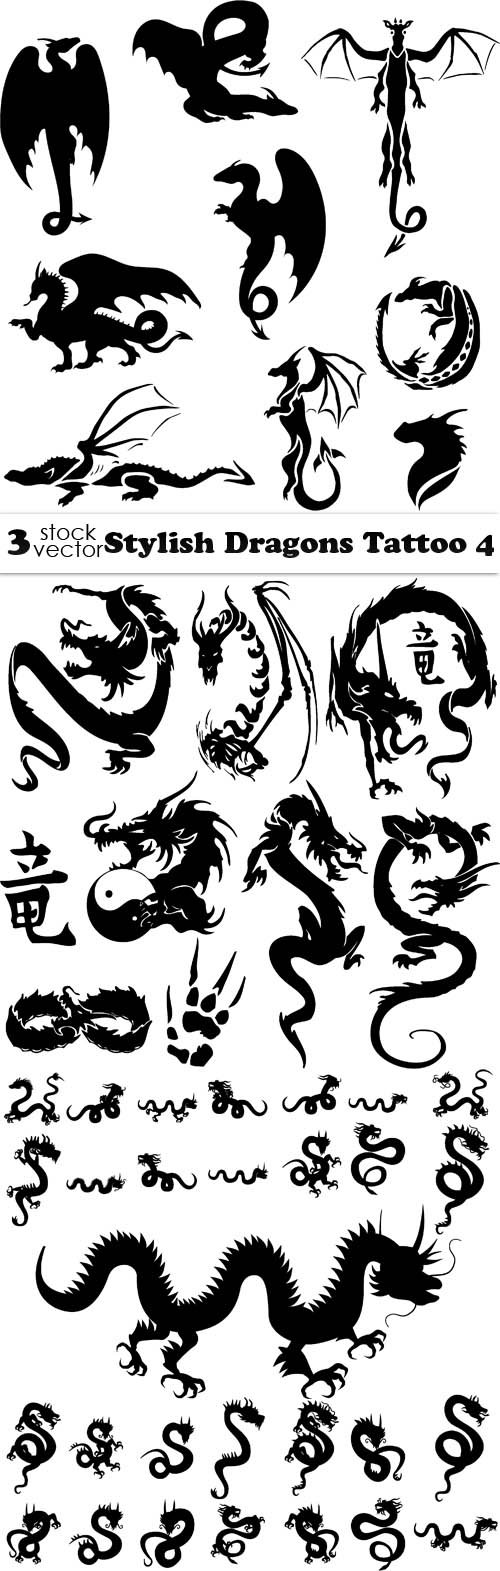 Vectors - Stylish Dragons Tattoo 4